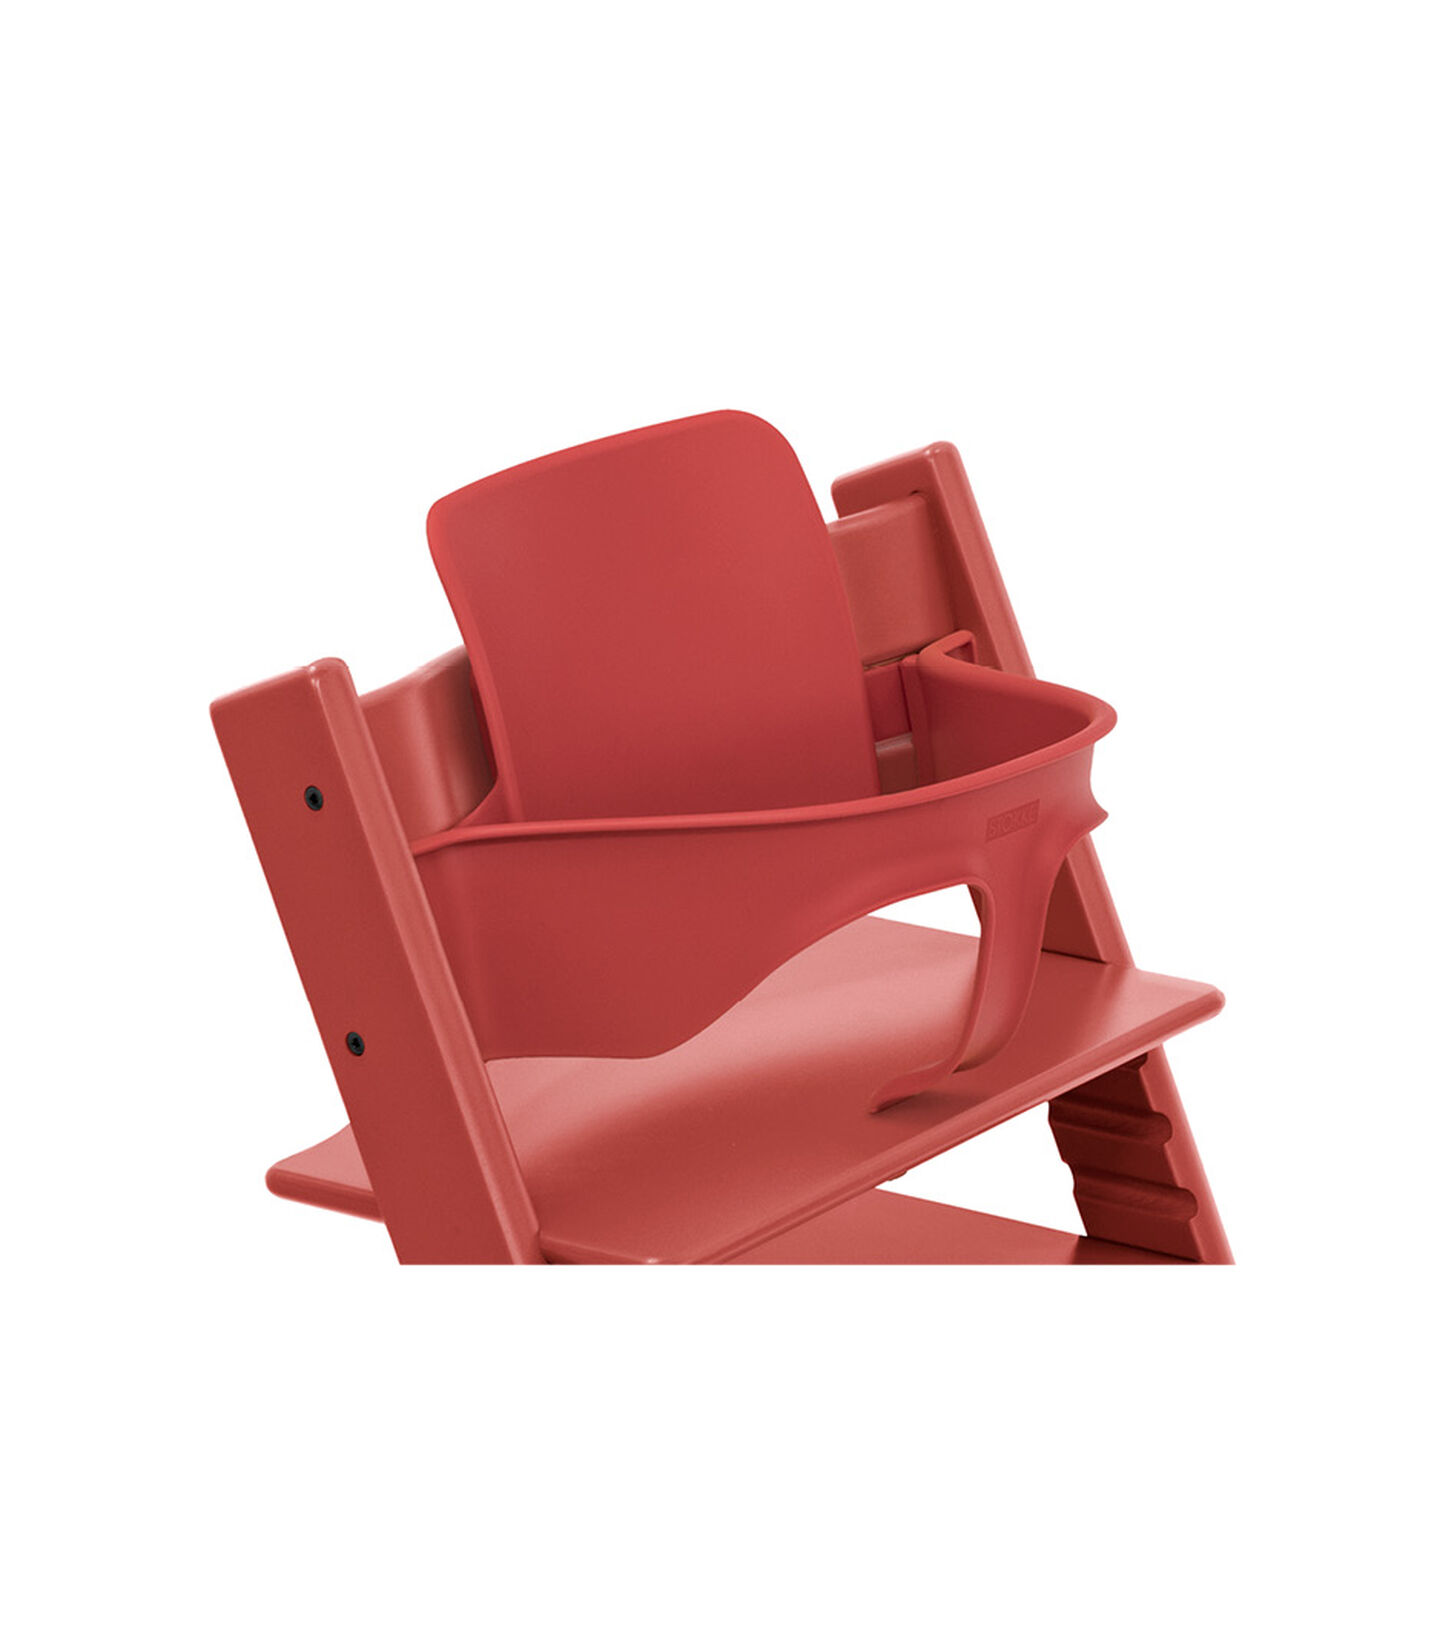 Tripp Trapp® Baby Set Rouge chaud, Rouge chaud, mainview view 1